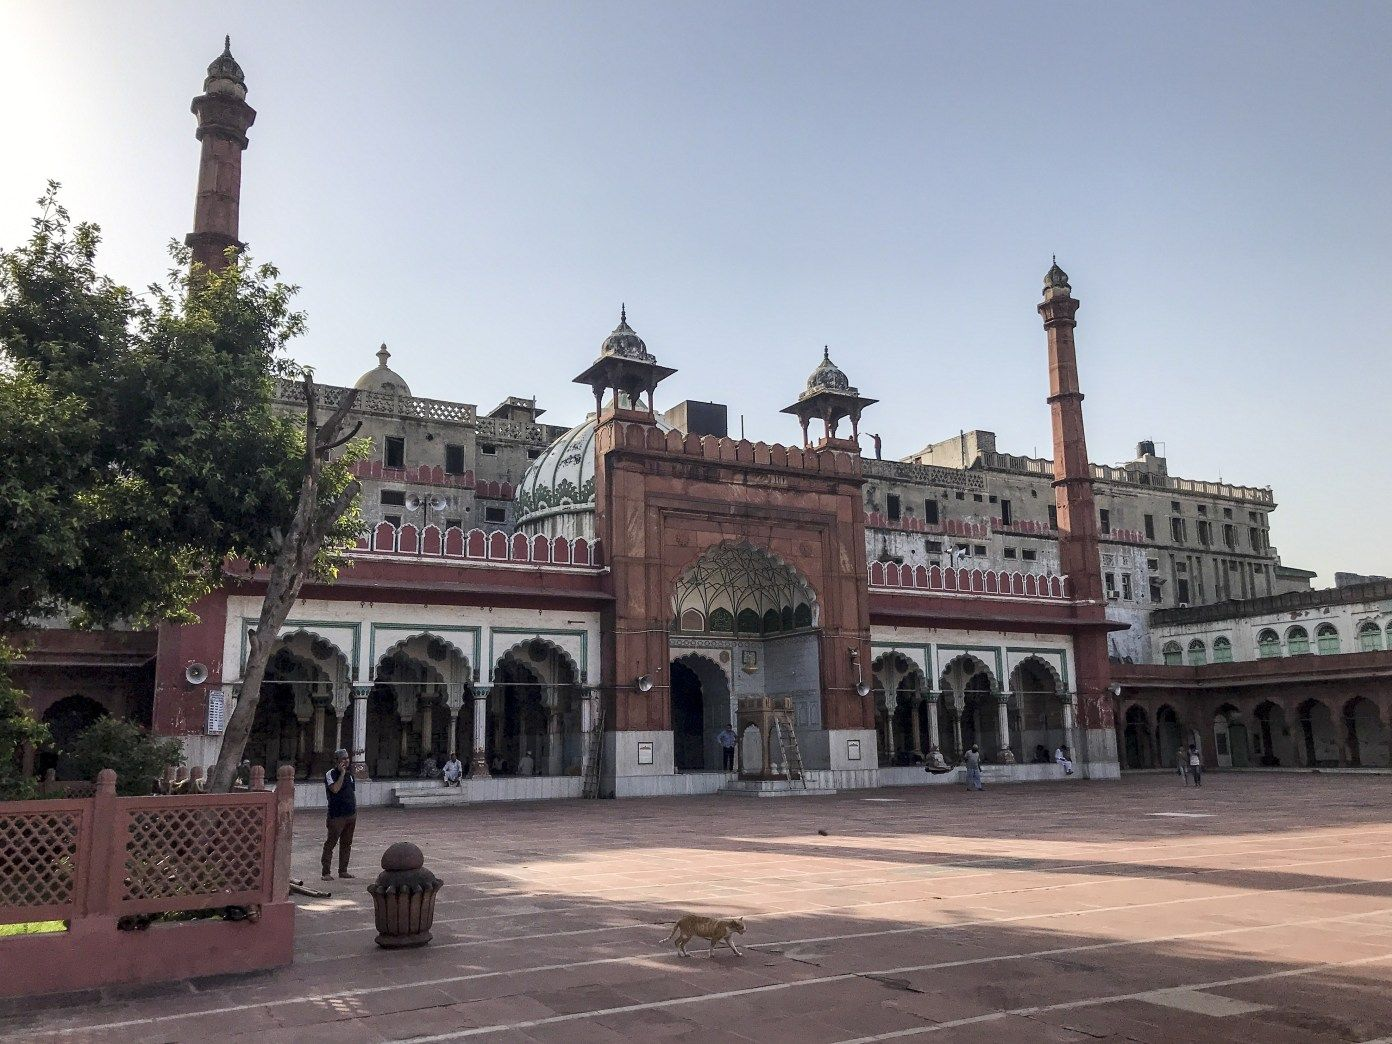 Monumental Feats of Mughal Women : 7 Iconic Spots in Delhi (With images) | Mughal architecture, Mughal, Delhi monuments